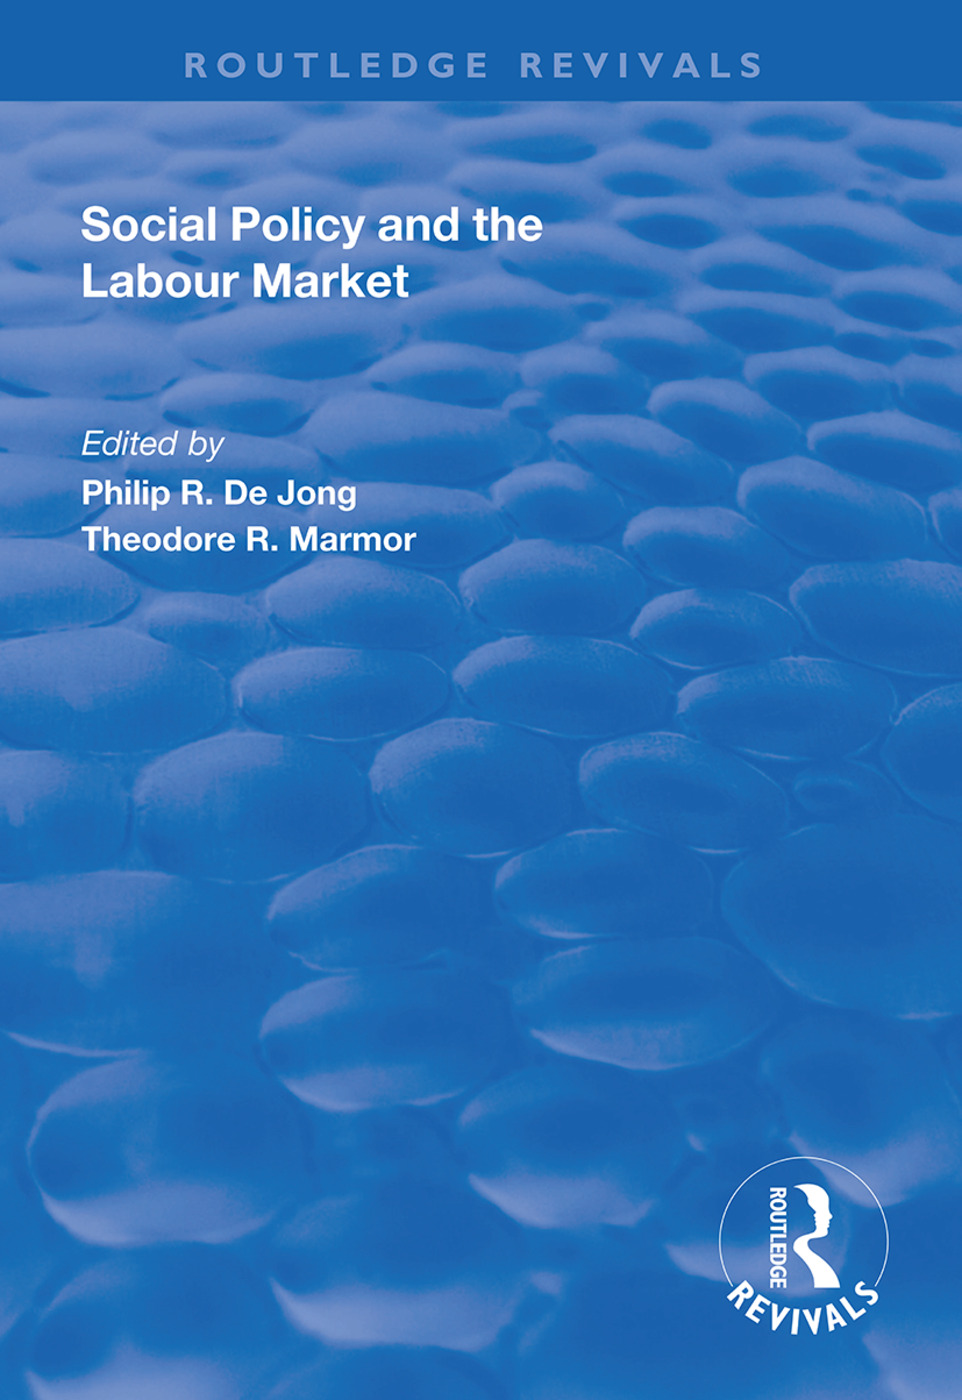 Social Policy and the Labour Market